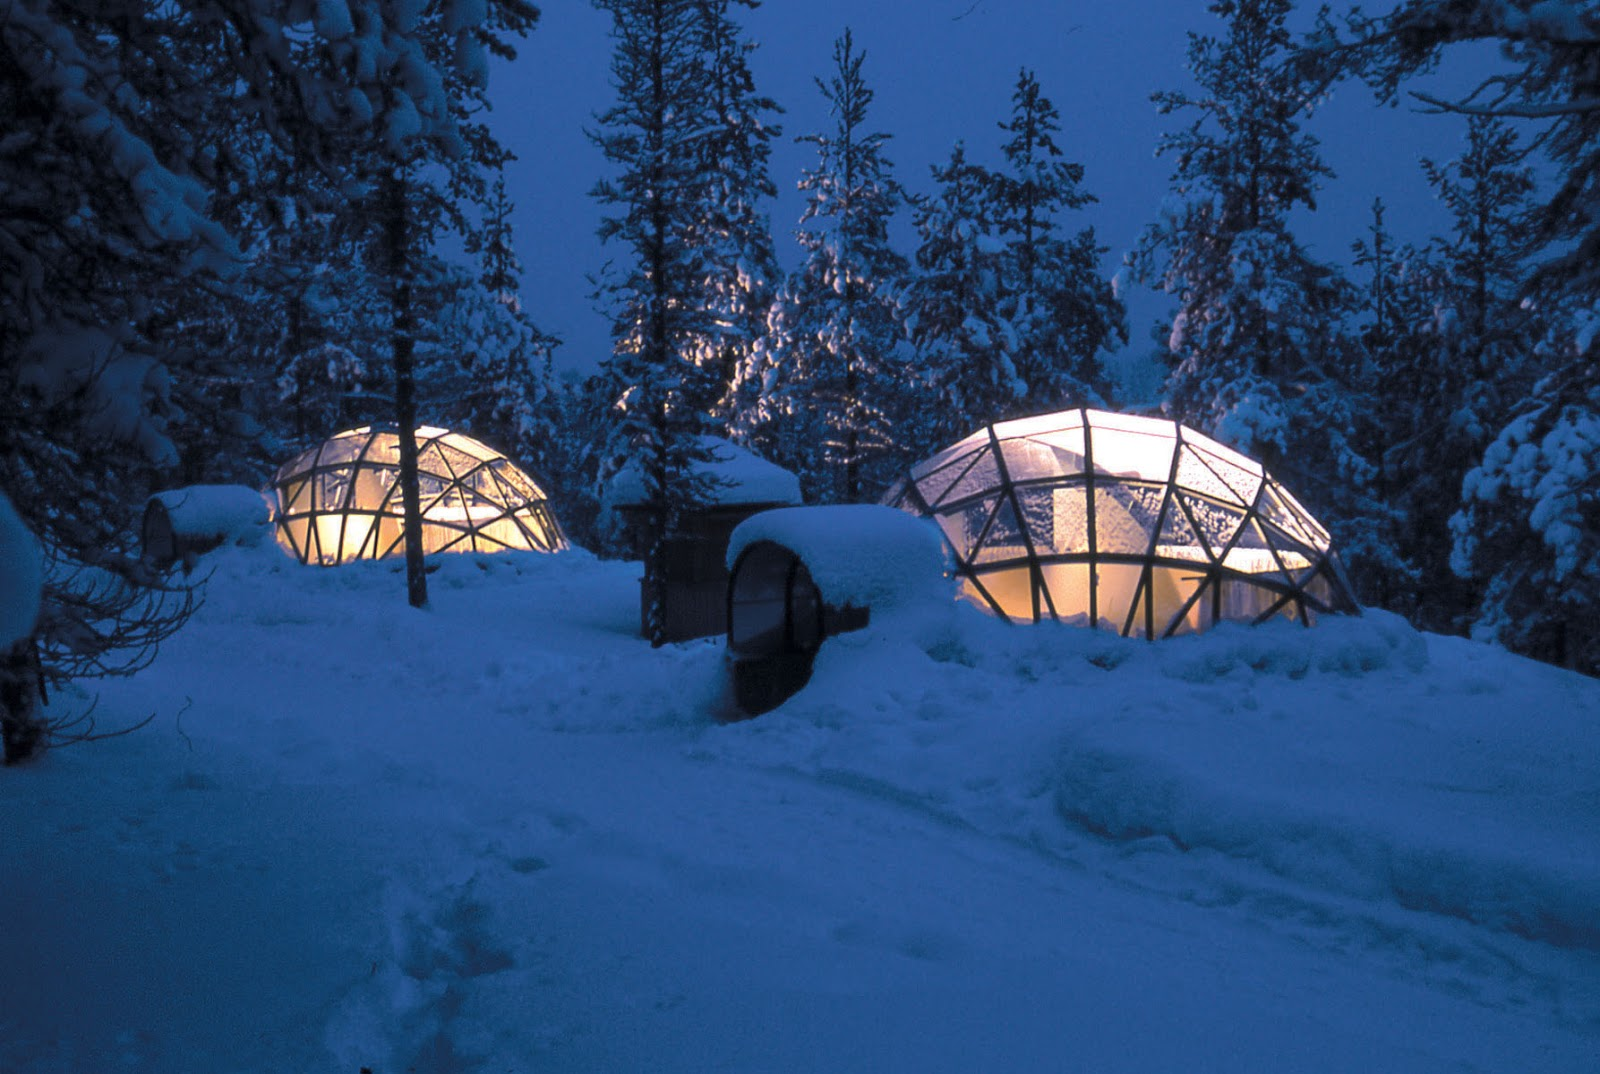 Hotel Igloo Village Best Place To Stay And See The